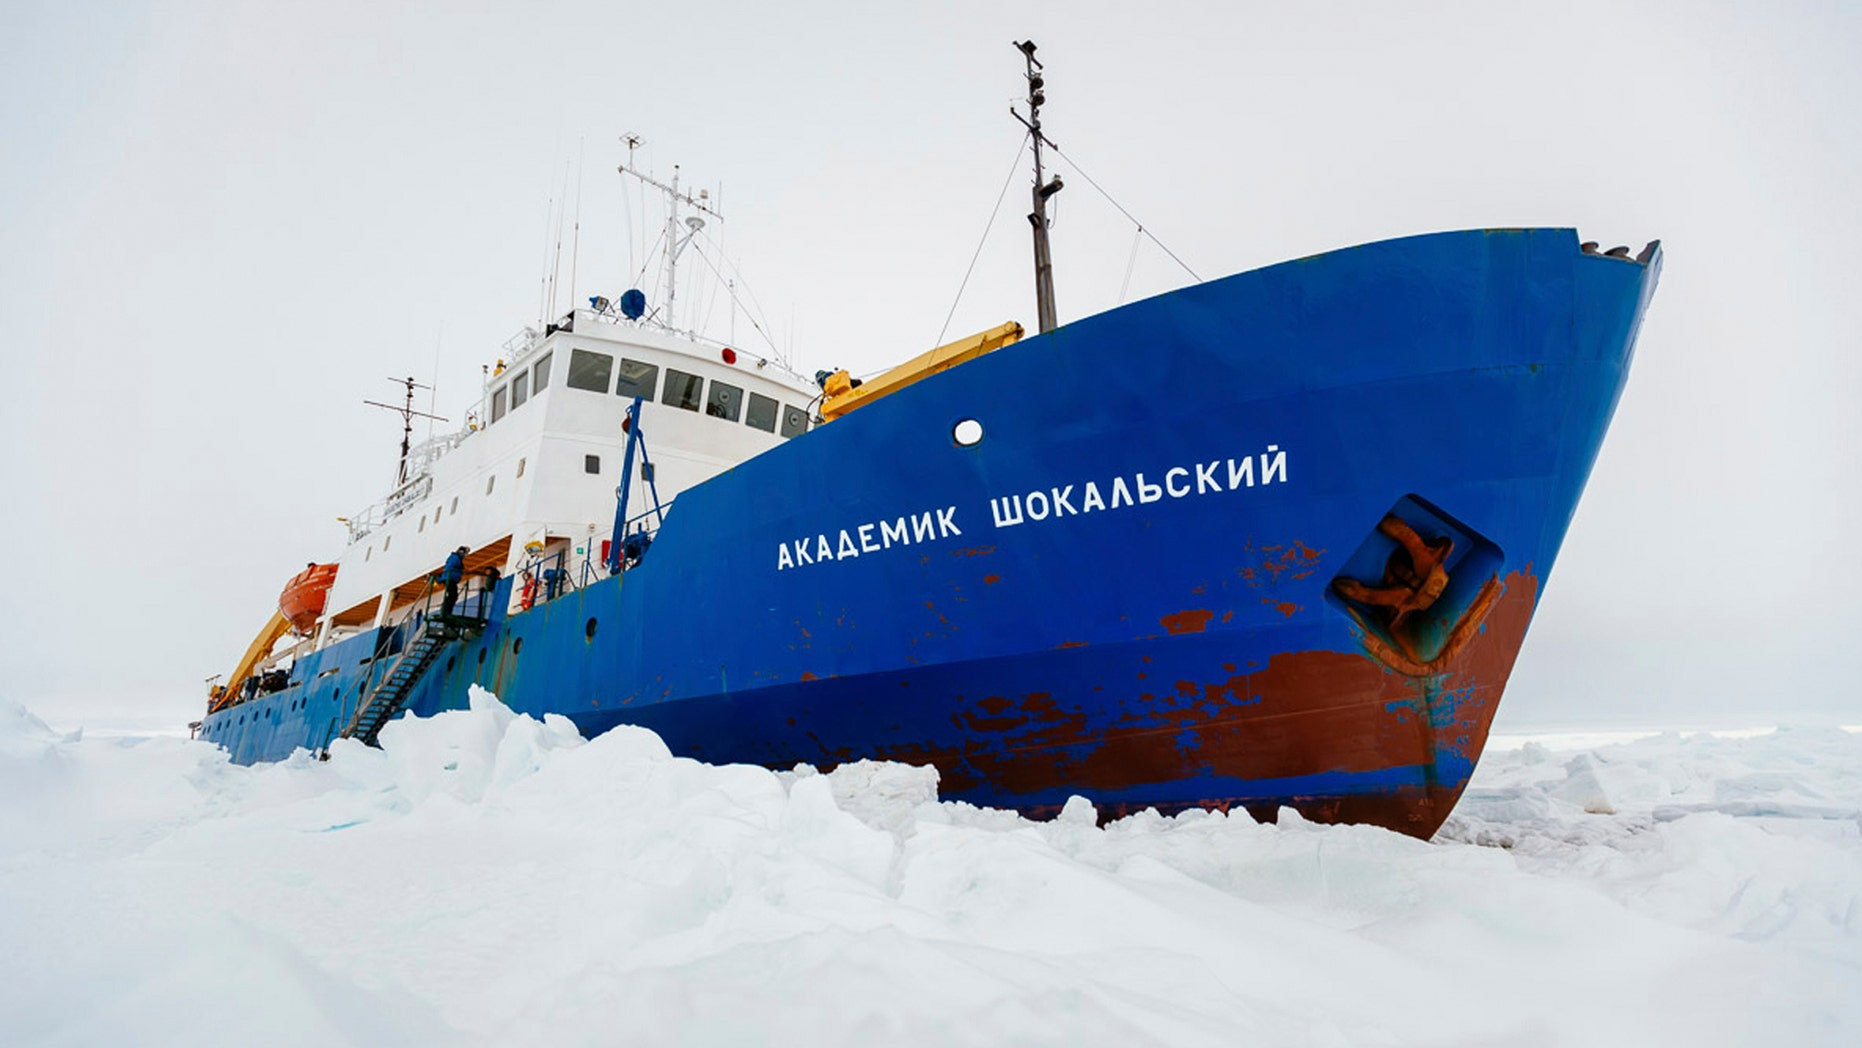 Dec. 27, 2013: In this image provided by Australasian Antarctic Expedition/Footloose Fotography the Russian ship MV Akademik Shokalskiy is trapped in thick Antarctic ice 1,500 nautical miles south of Hobart, Australia.